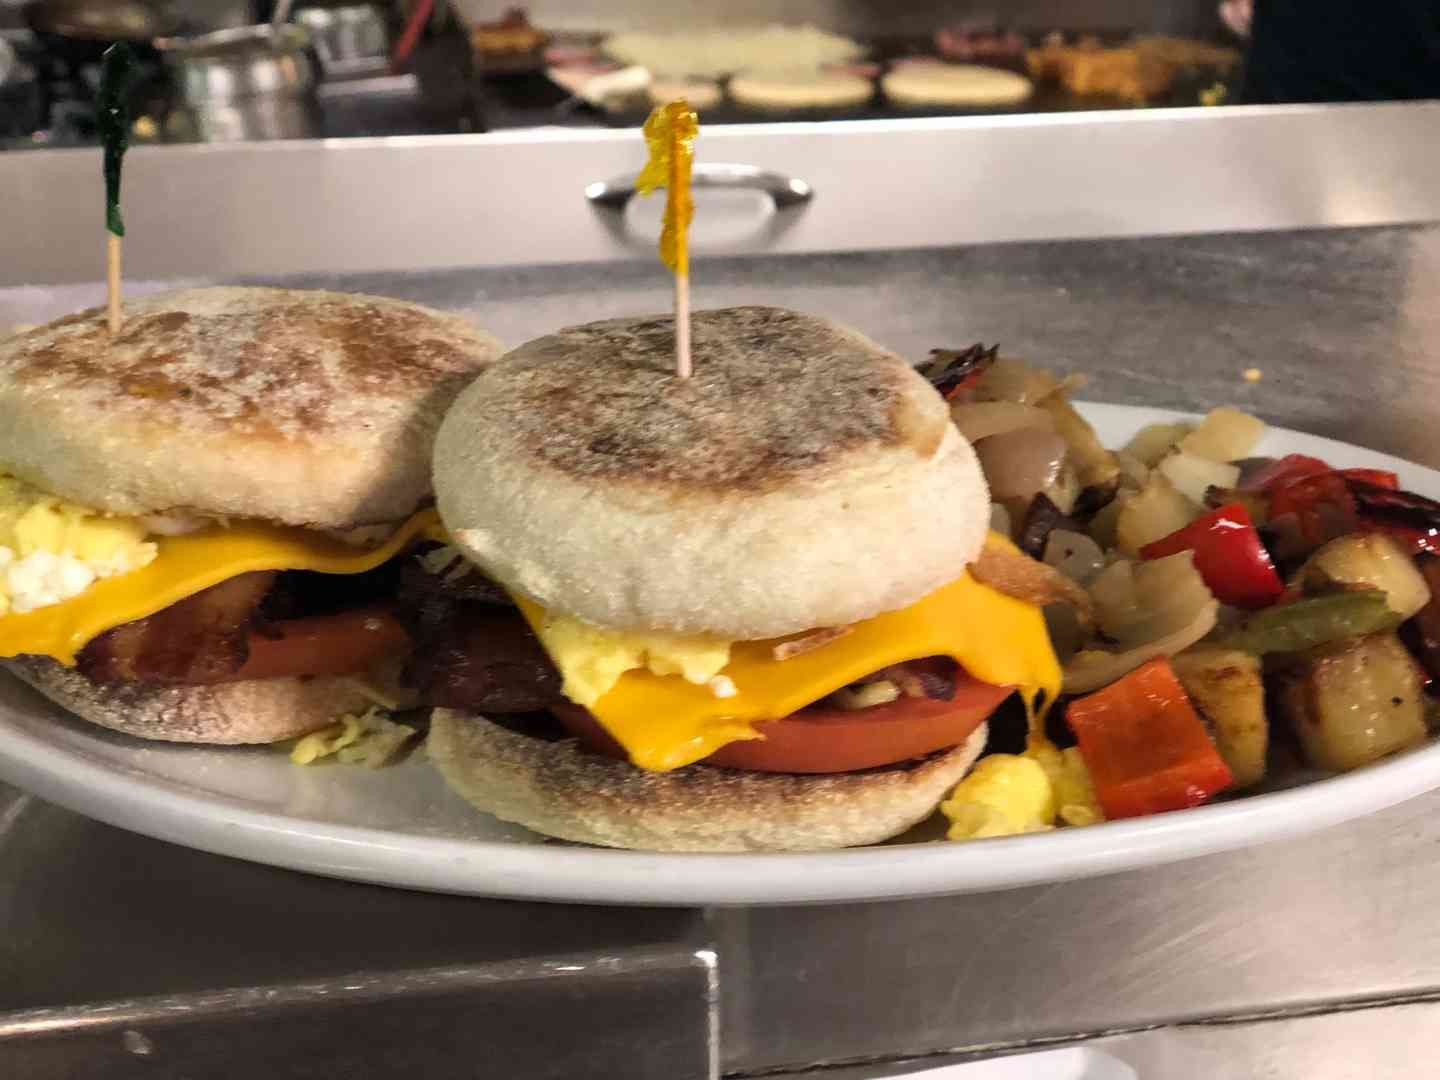 Toasted English muffin breakfast sandwich with American cheese, tomato, bacon & sausage